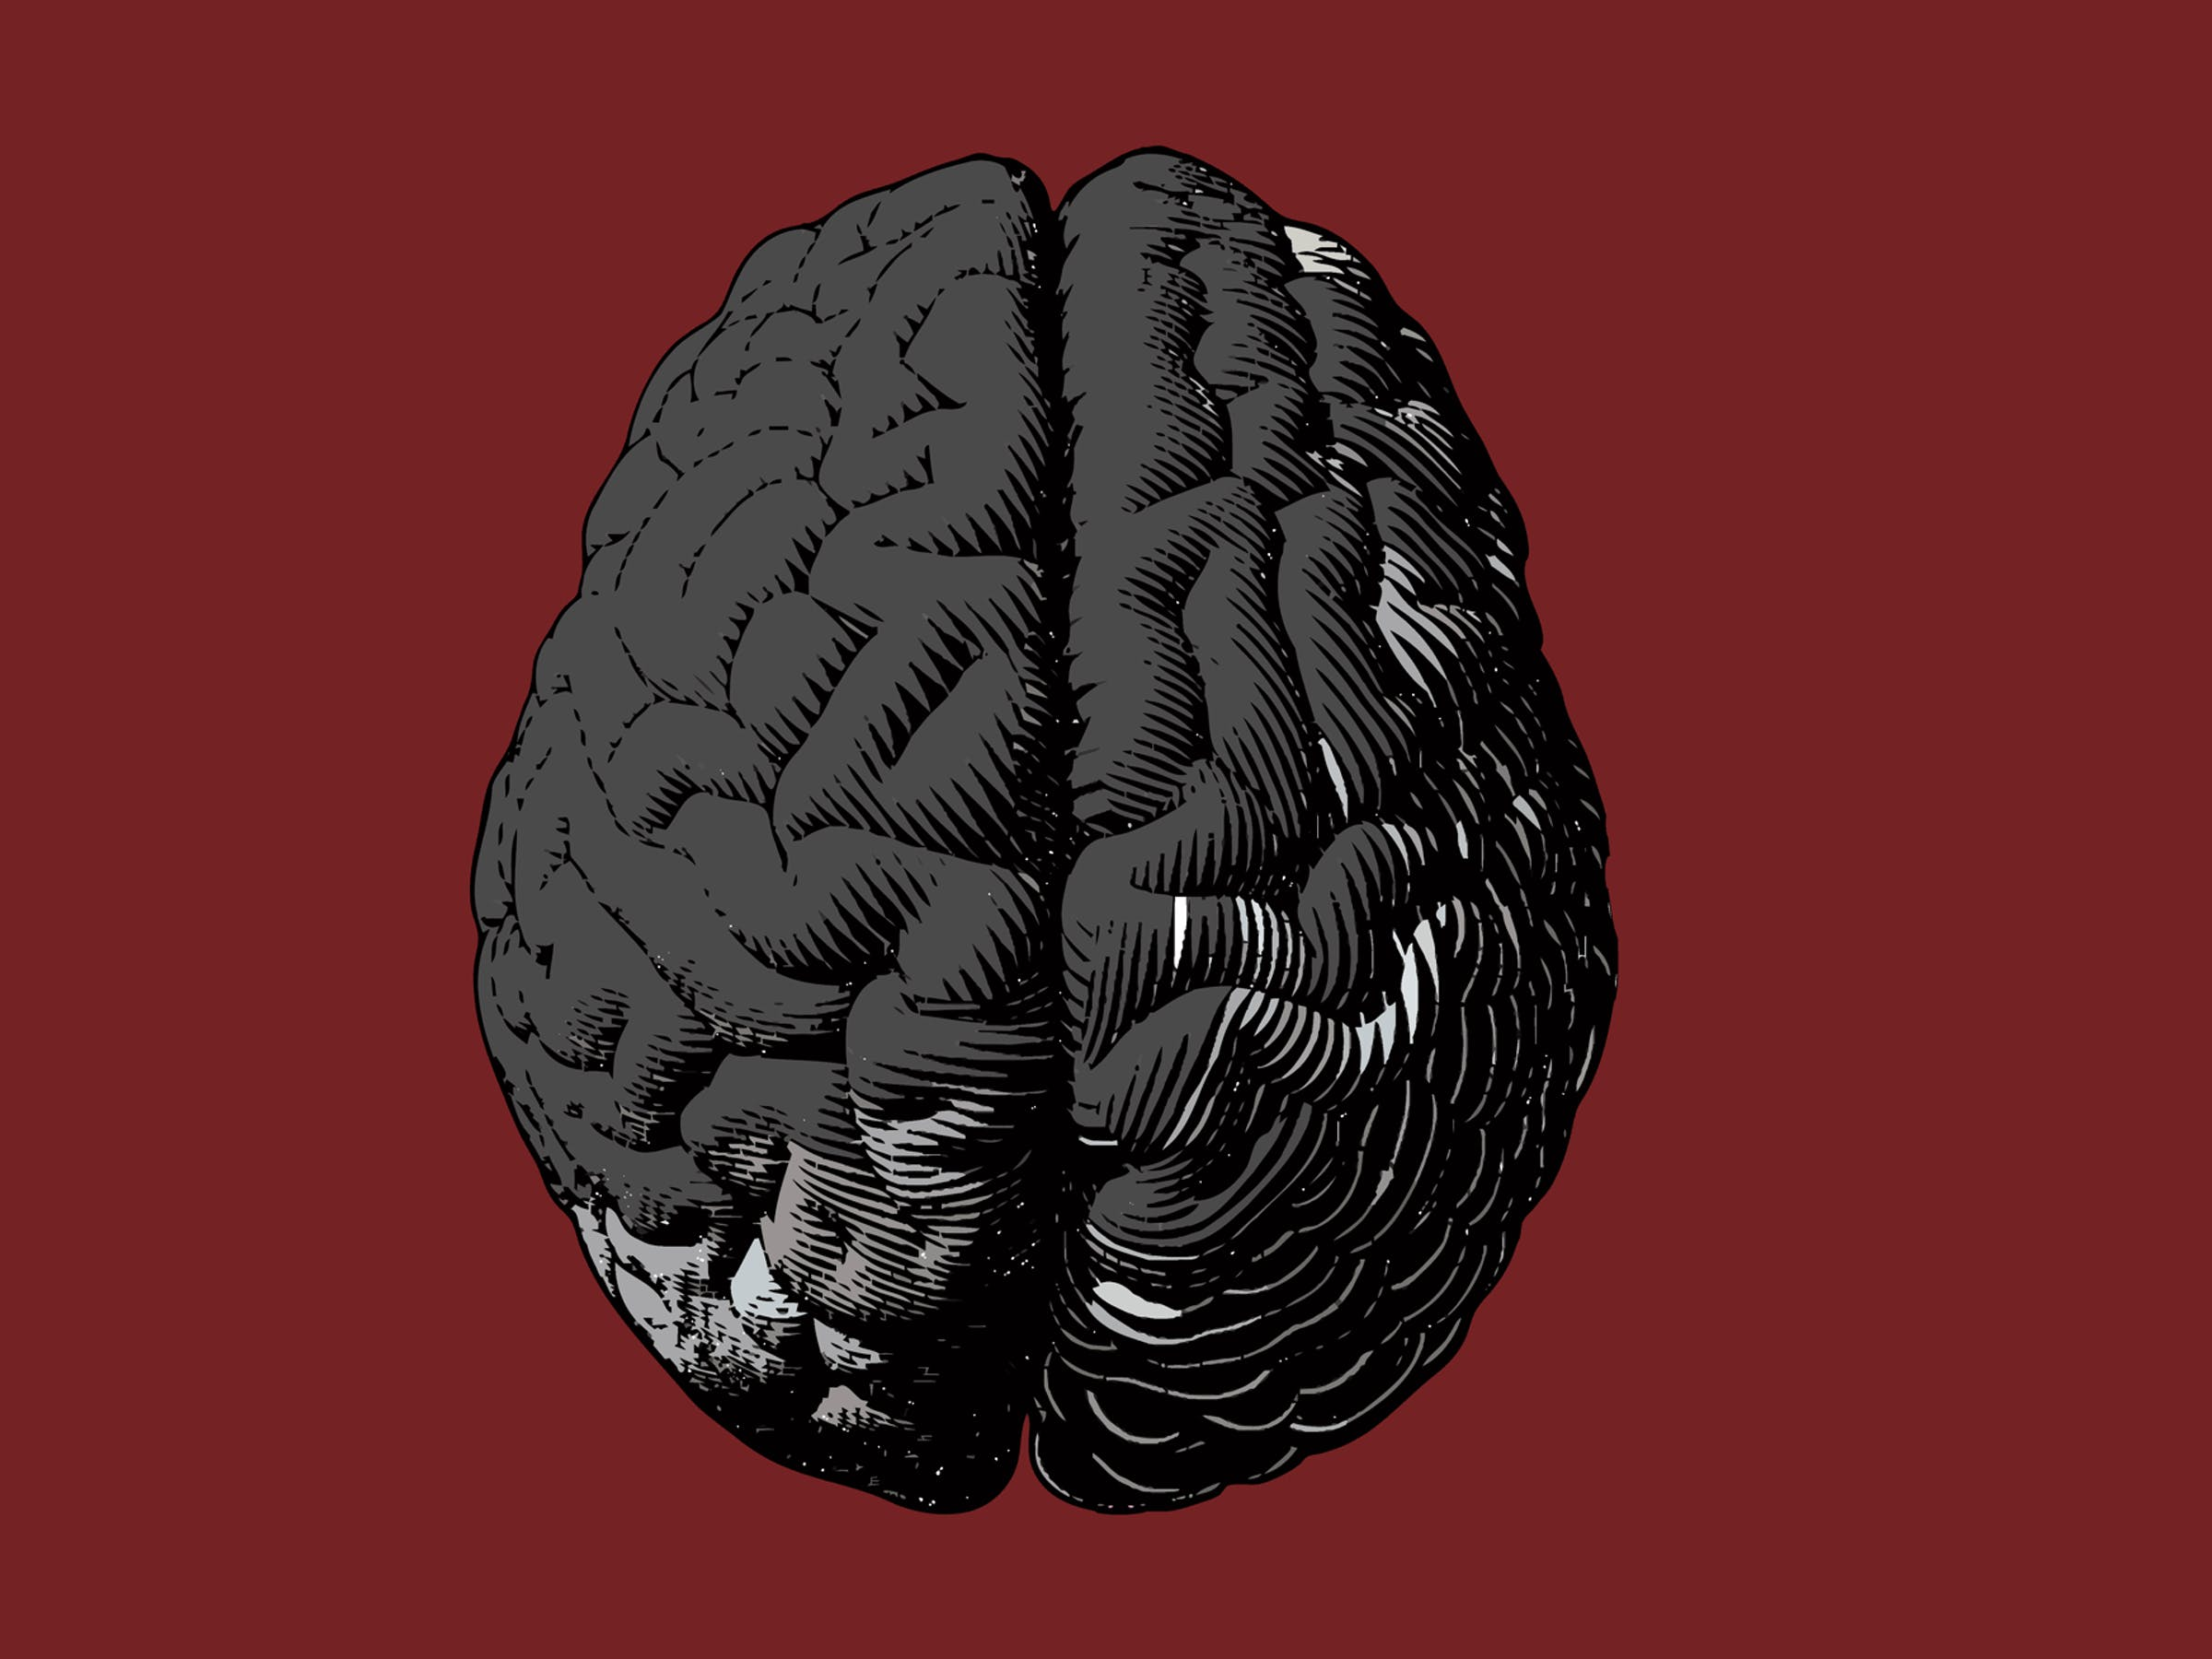 Brain vector illustration on red